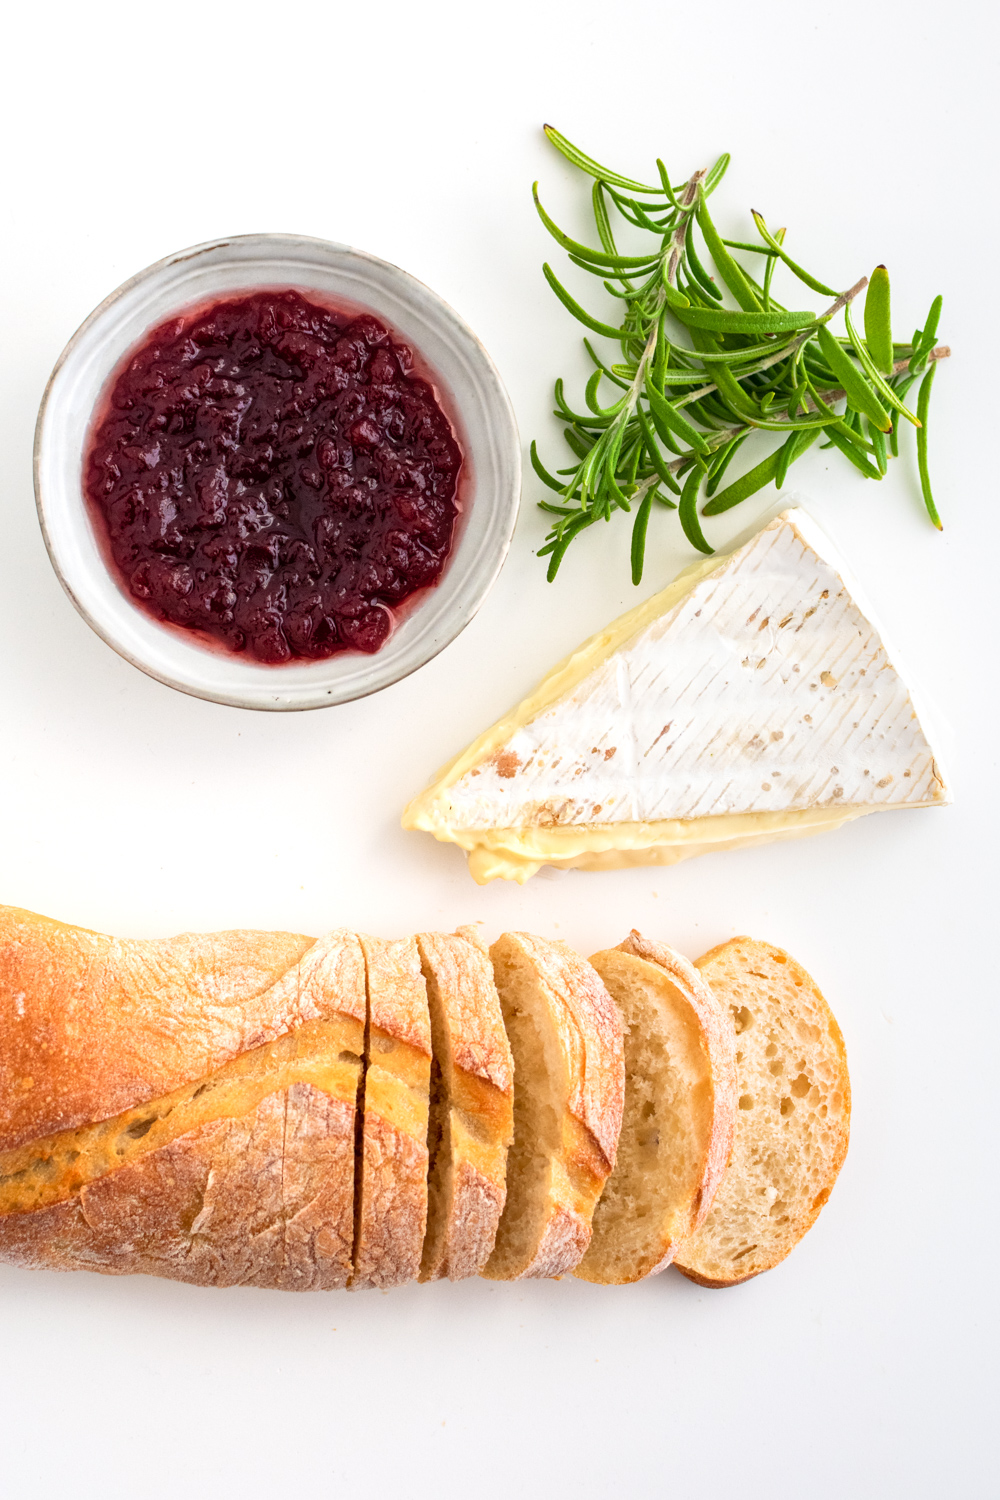 A ciabatta, brie, rosemary leaves, and a cranberry sauce in a pinch bowl.